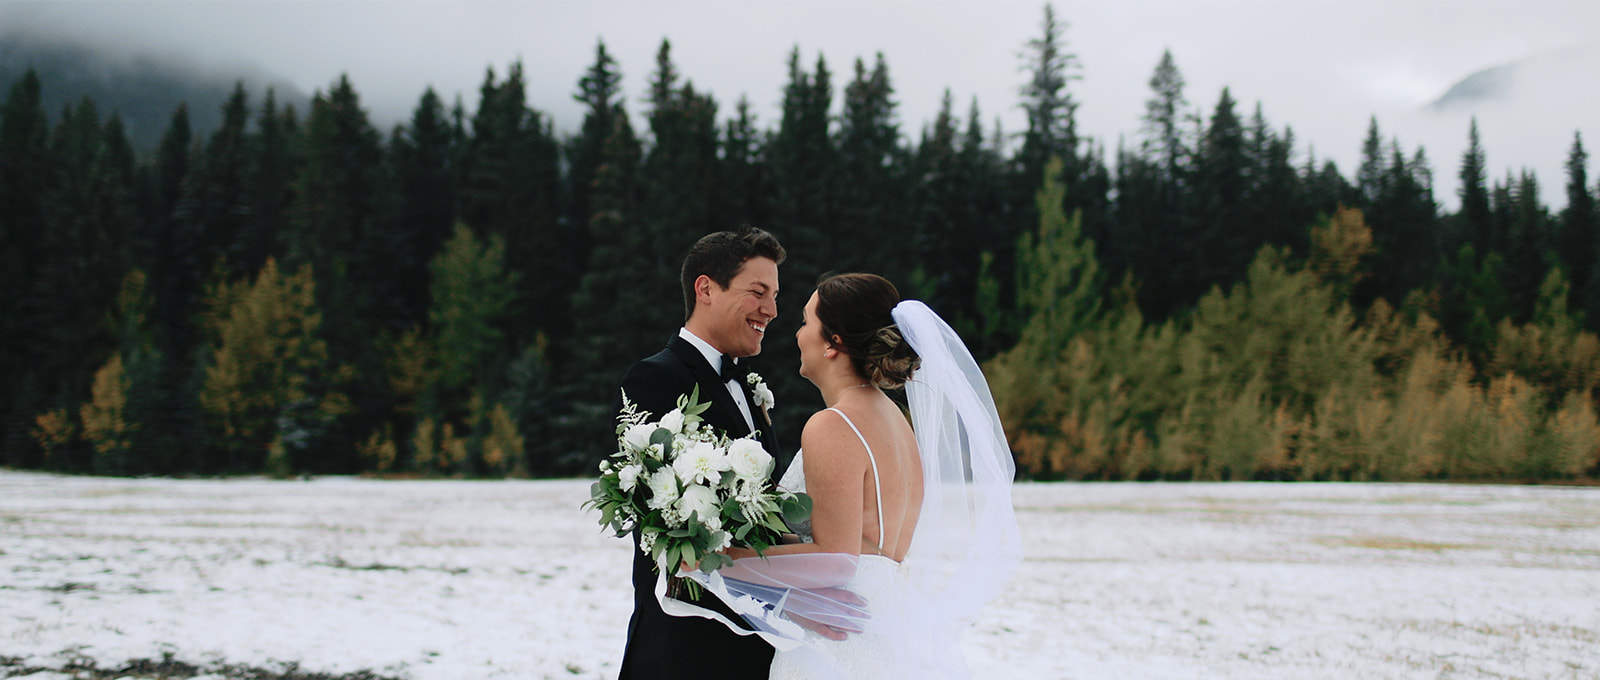 Karly and Brayden - Canmore wedding film